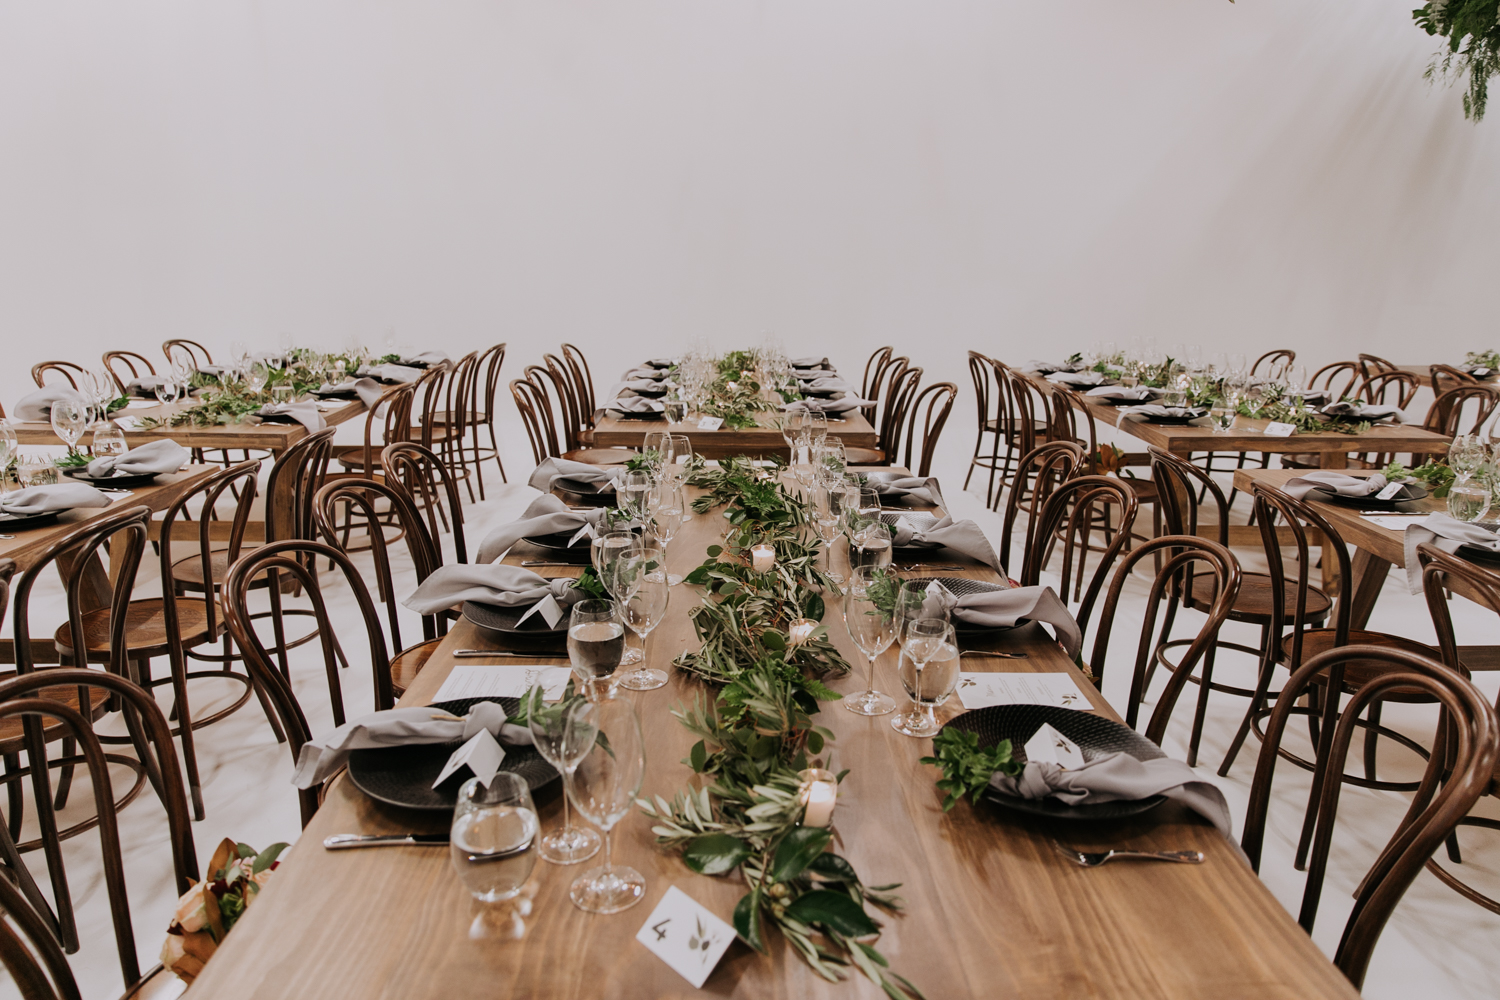 white+white weddings and events carrie and jay real wedding styling timber rustic studio warehouse venue bentwood chairs